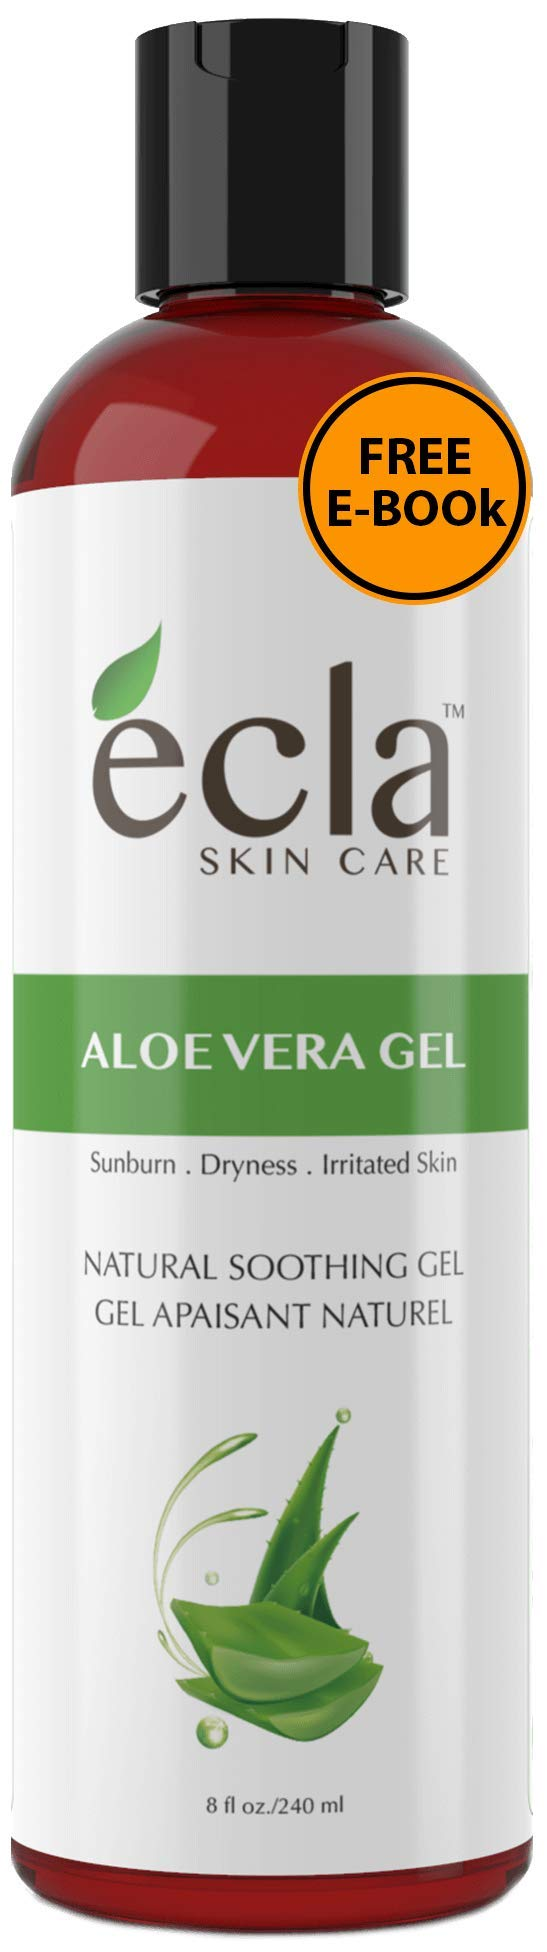 Aloe Vera Gel for Face, Body and Hair - Made with Organic 100% Pure Cold Pressed Juice, Not Powder (8 Oz - 240ml)